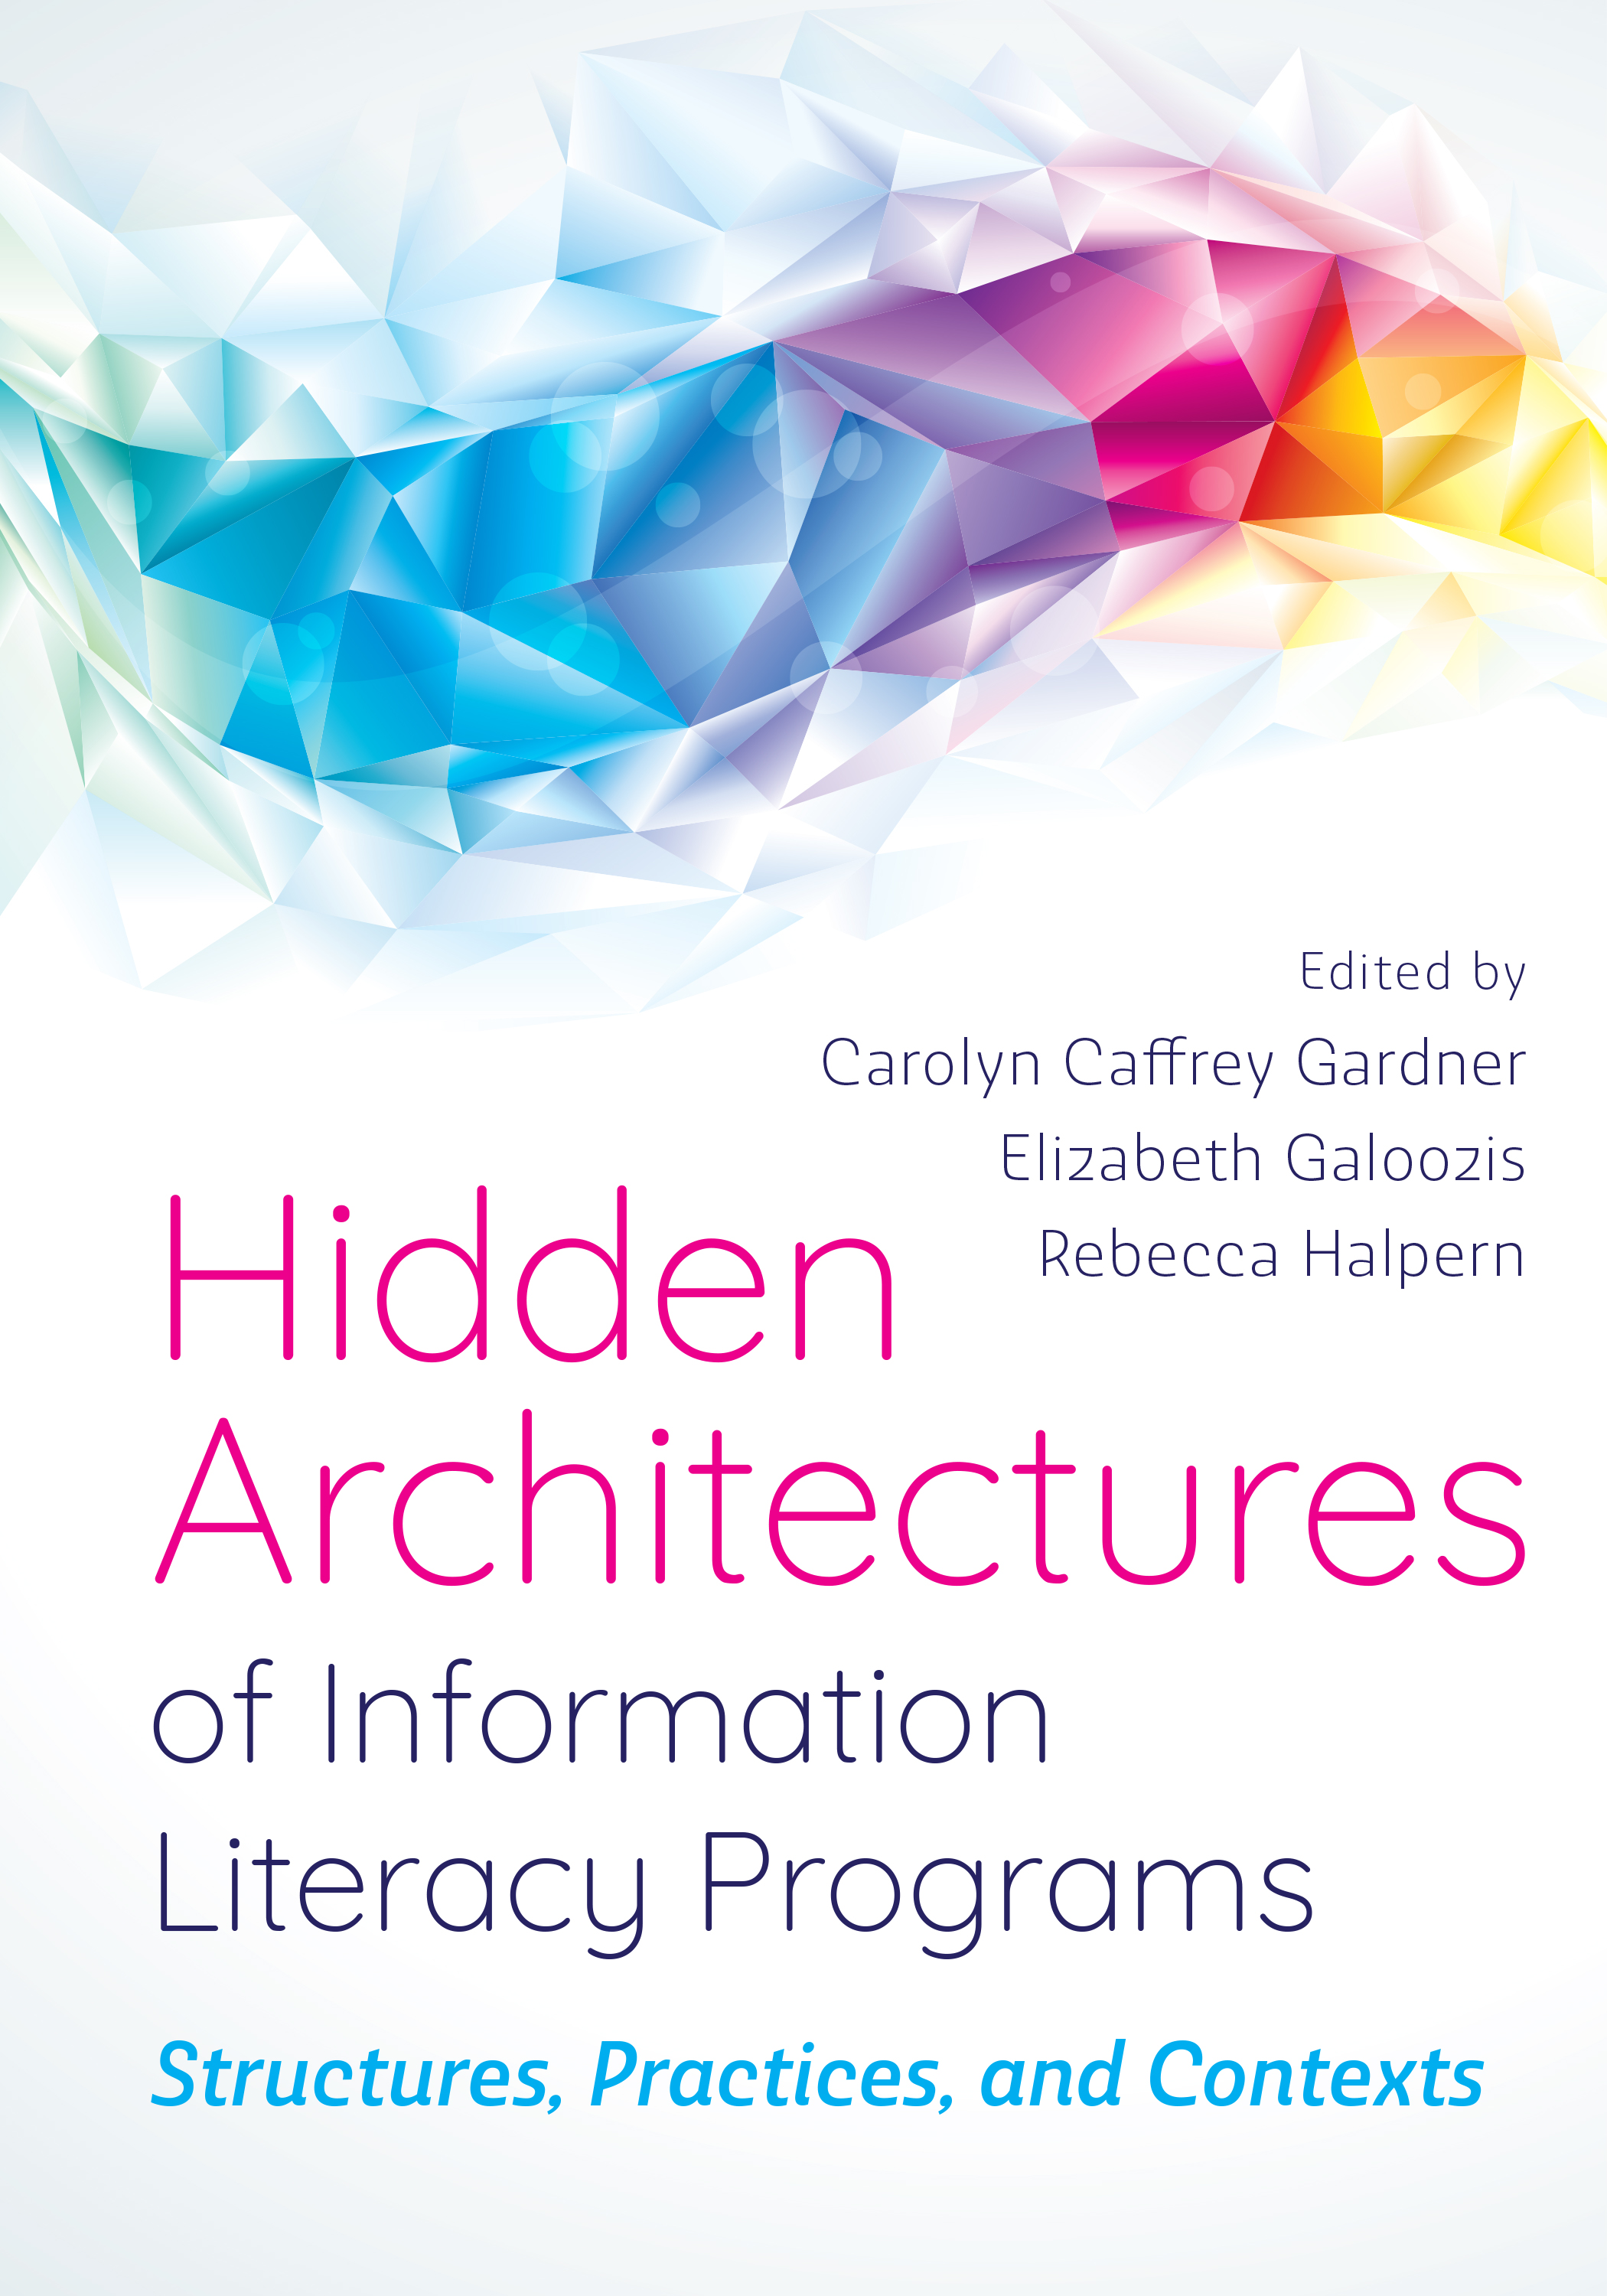 book cover for Hidden Architectures of Information Literacy Programs: Structures, Practices, and Contexts